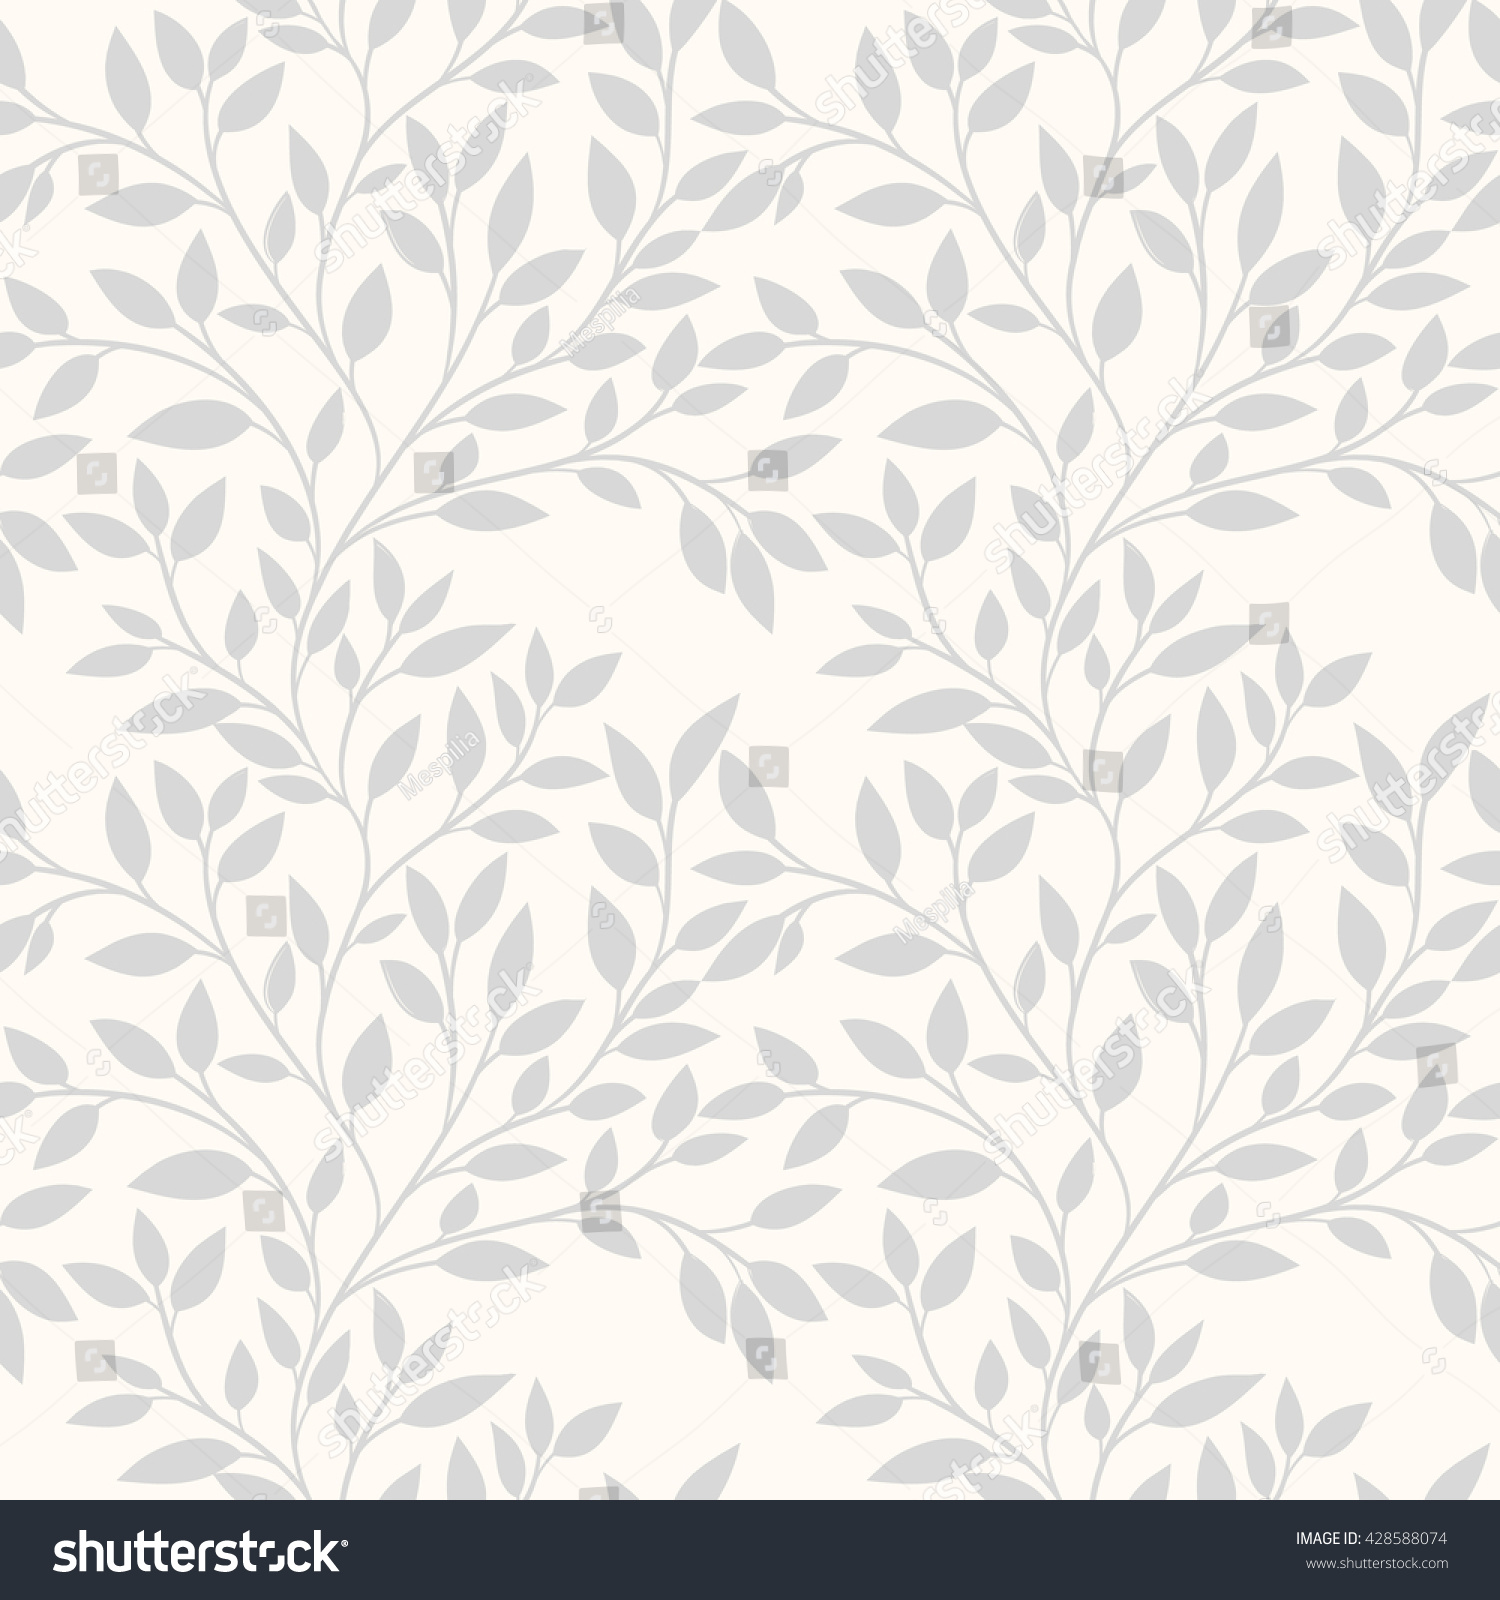 Floral seamless pattern can be used for wallpaper, website background, textile printing. Hand